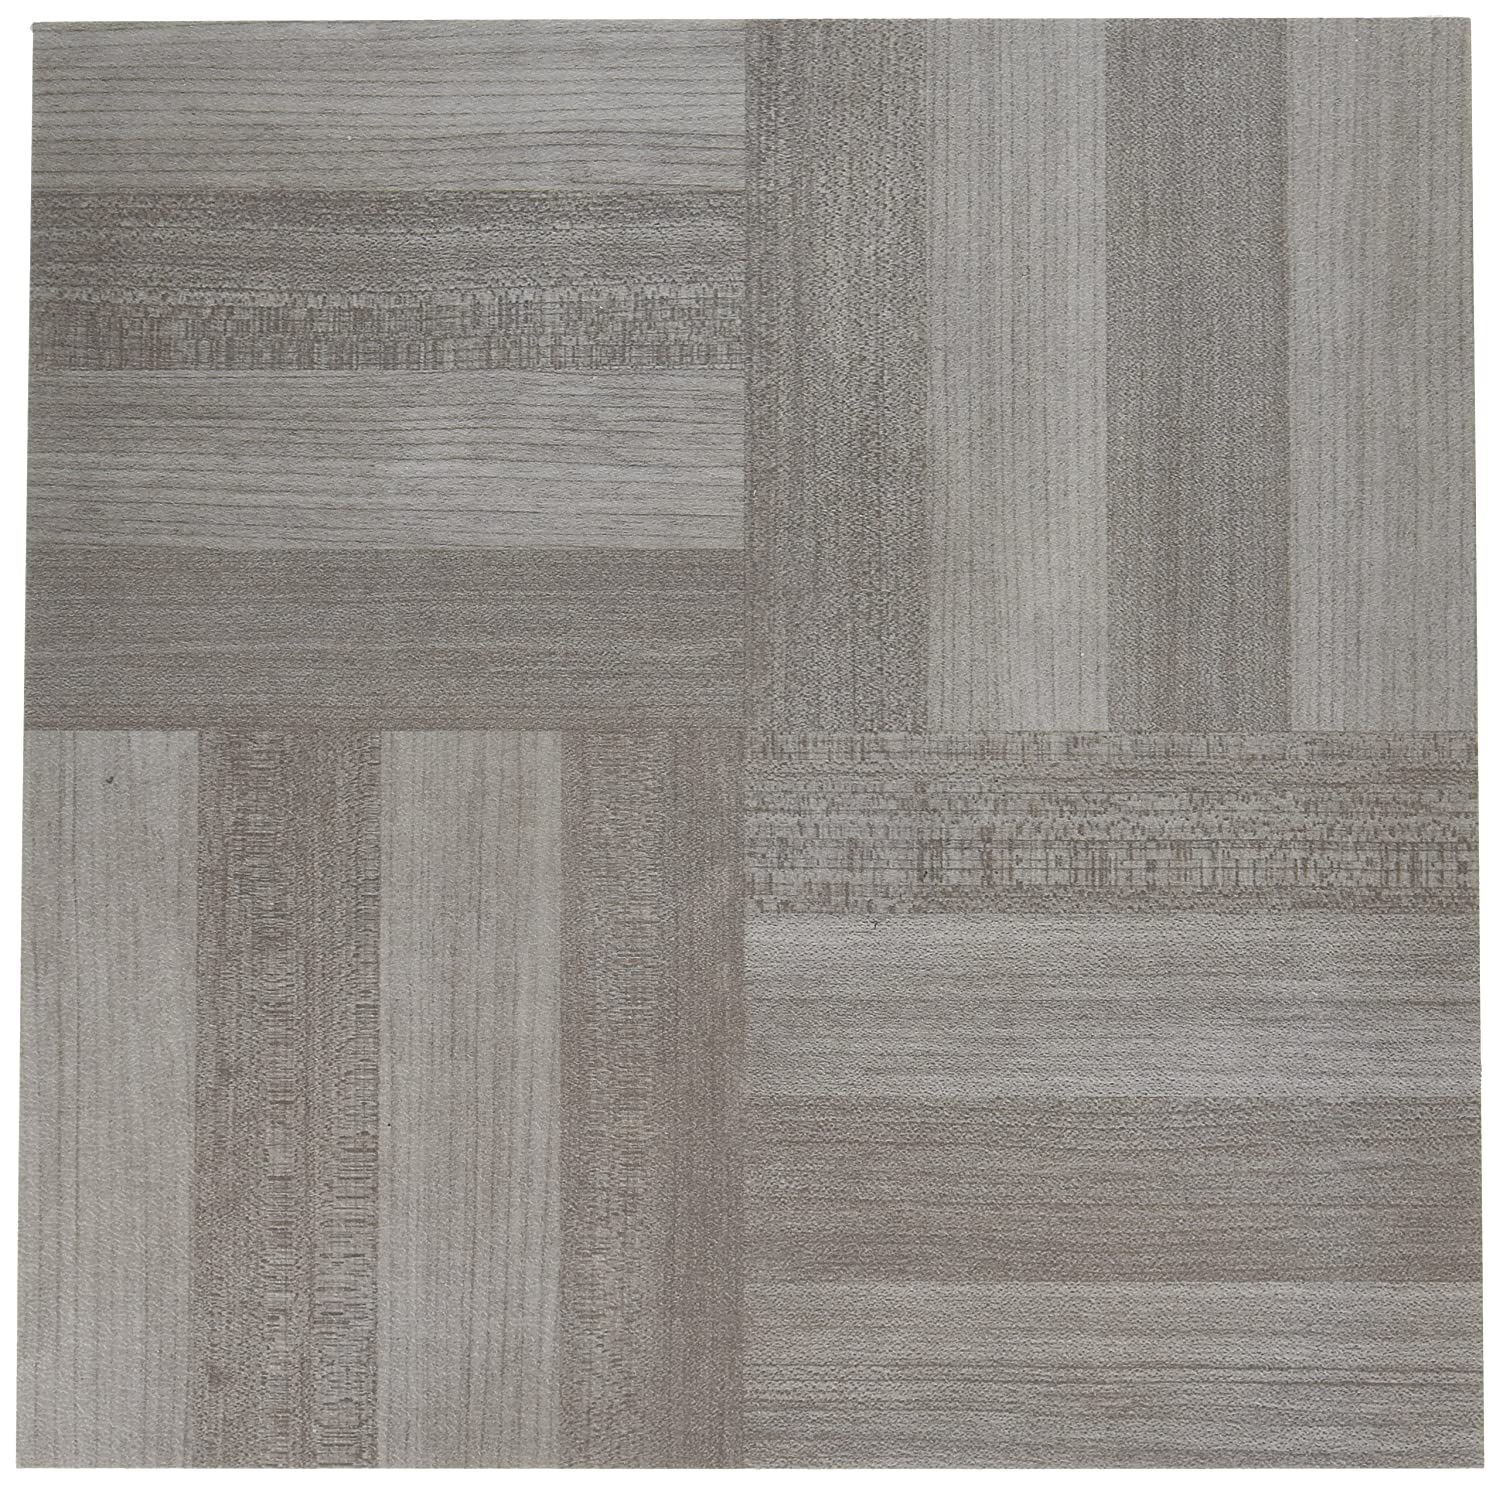 "Achim Home Furnishings FTVWD23120 Nexus Self Adhesive 20 Vinyl Floor Tiles, 12"" x 12"", Ash Grey Wood"